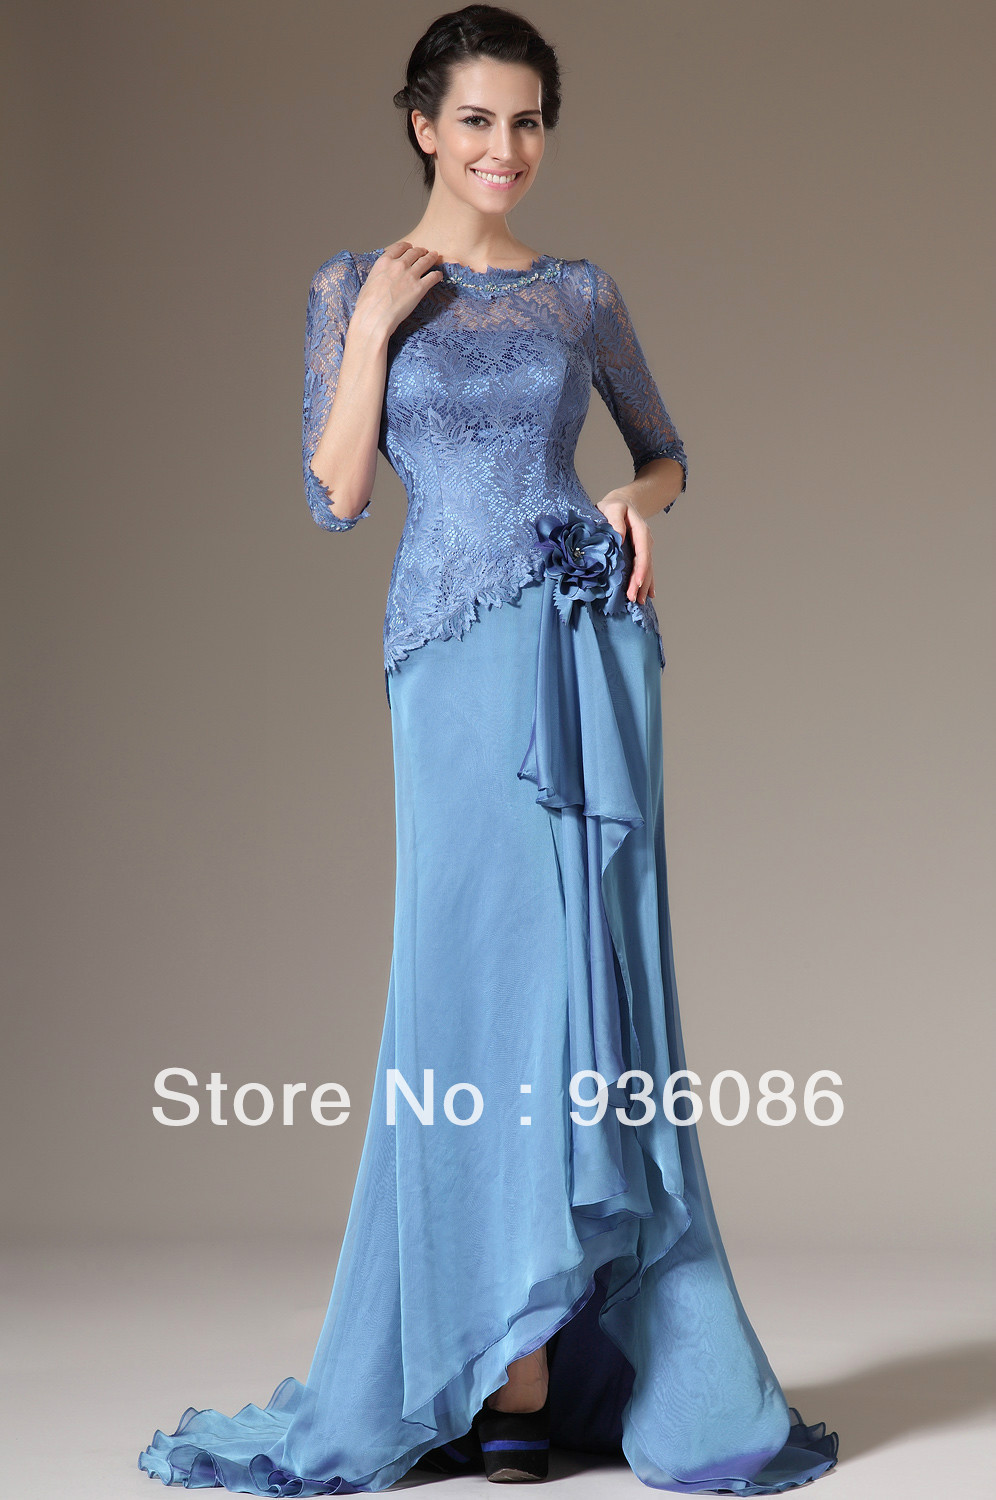 wedding outfits for mother in law mothers dress for wedding Lilac Sweetheart Knee Length Ruched Wedding Mother Outfits